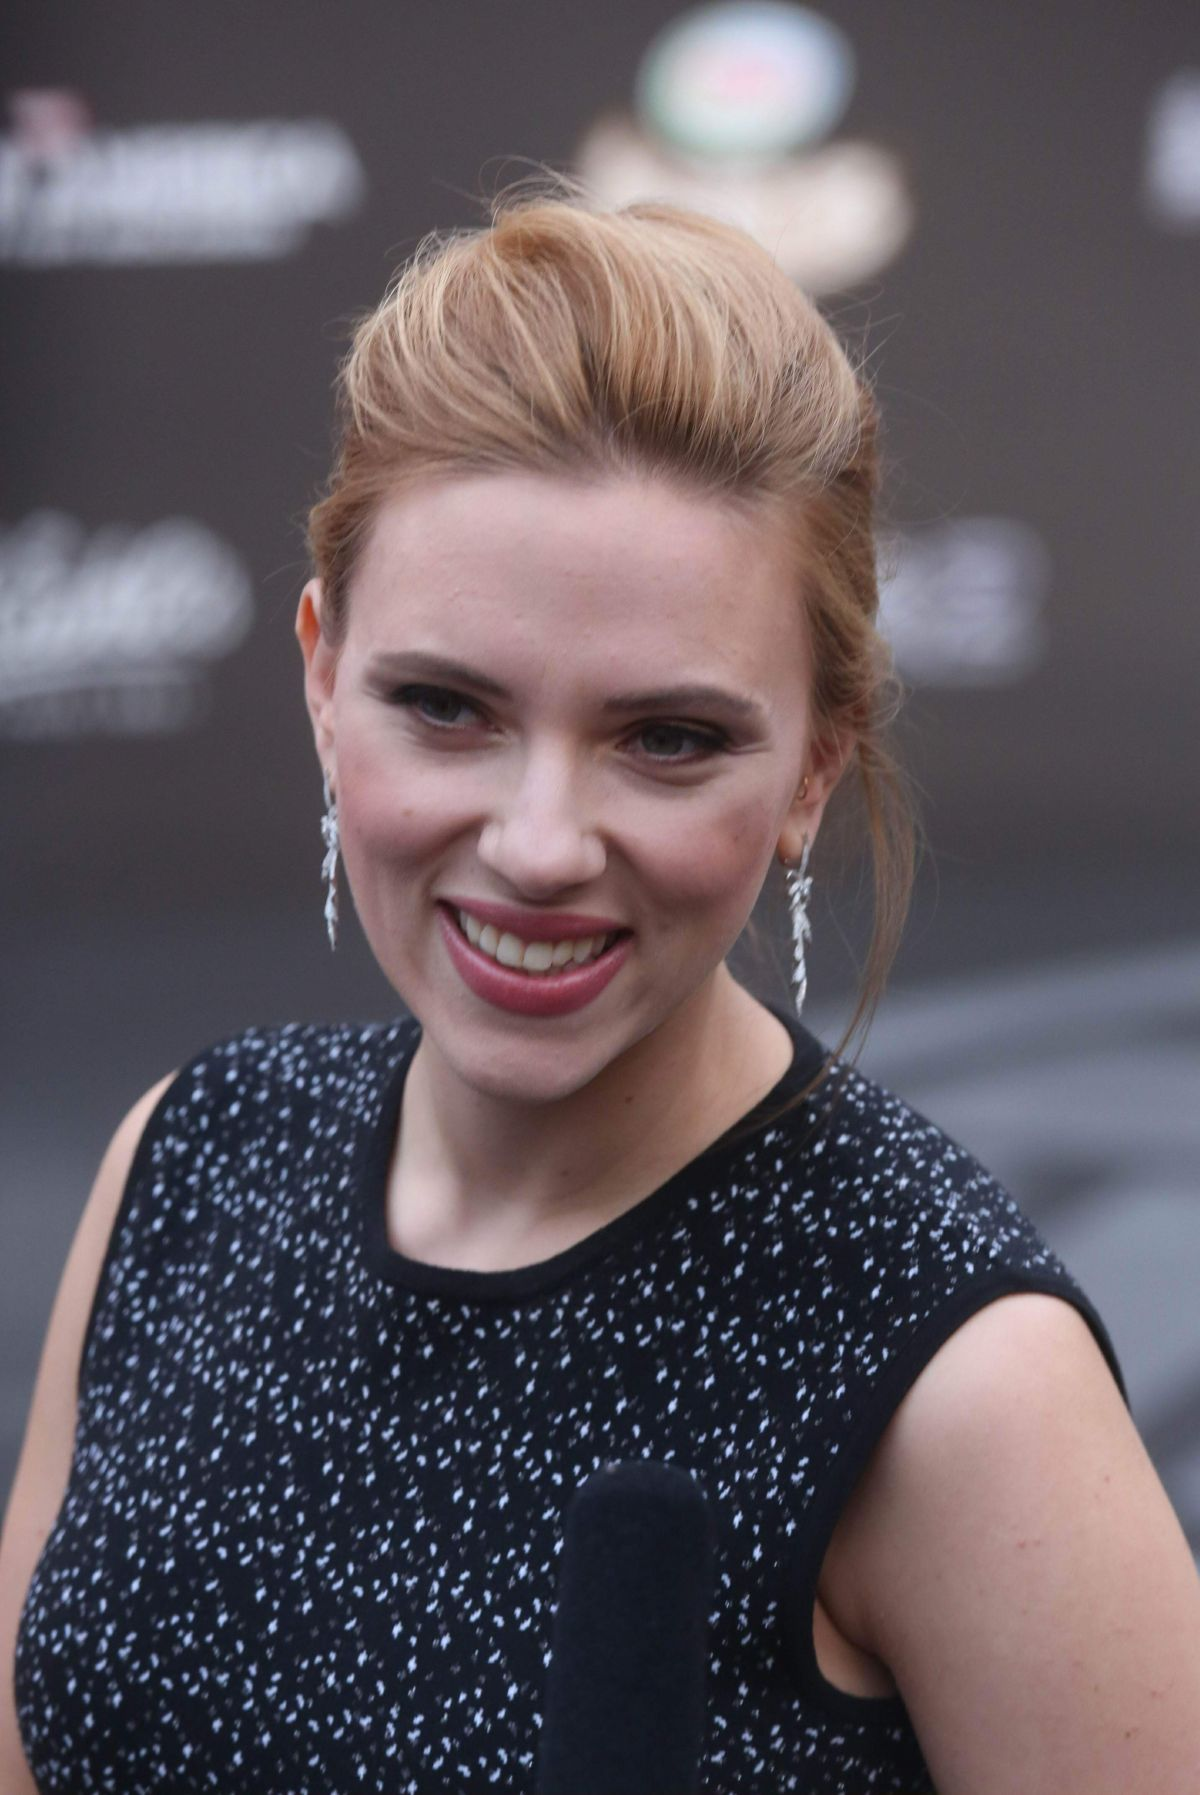 SCARLETT JOHANSSON at Captain America: The Winter Soldier Press Event in Beijing